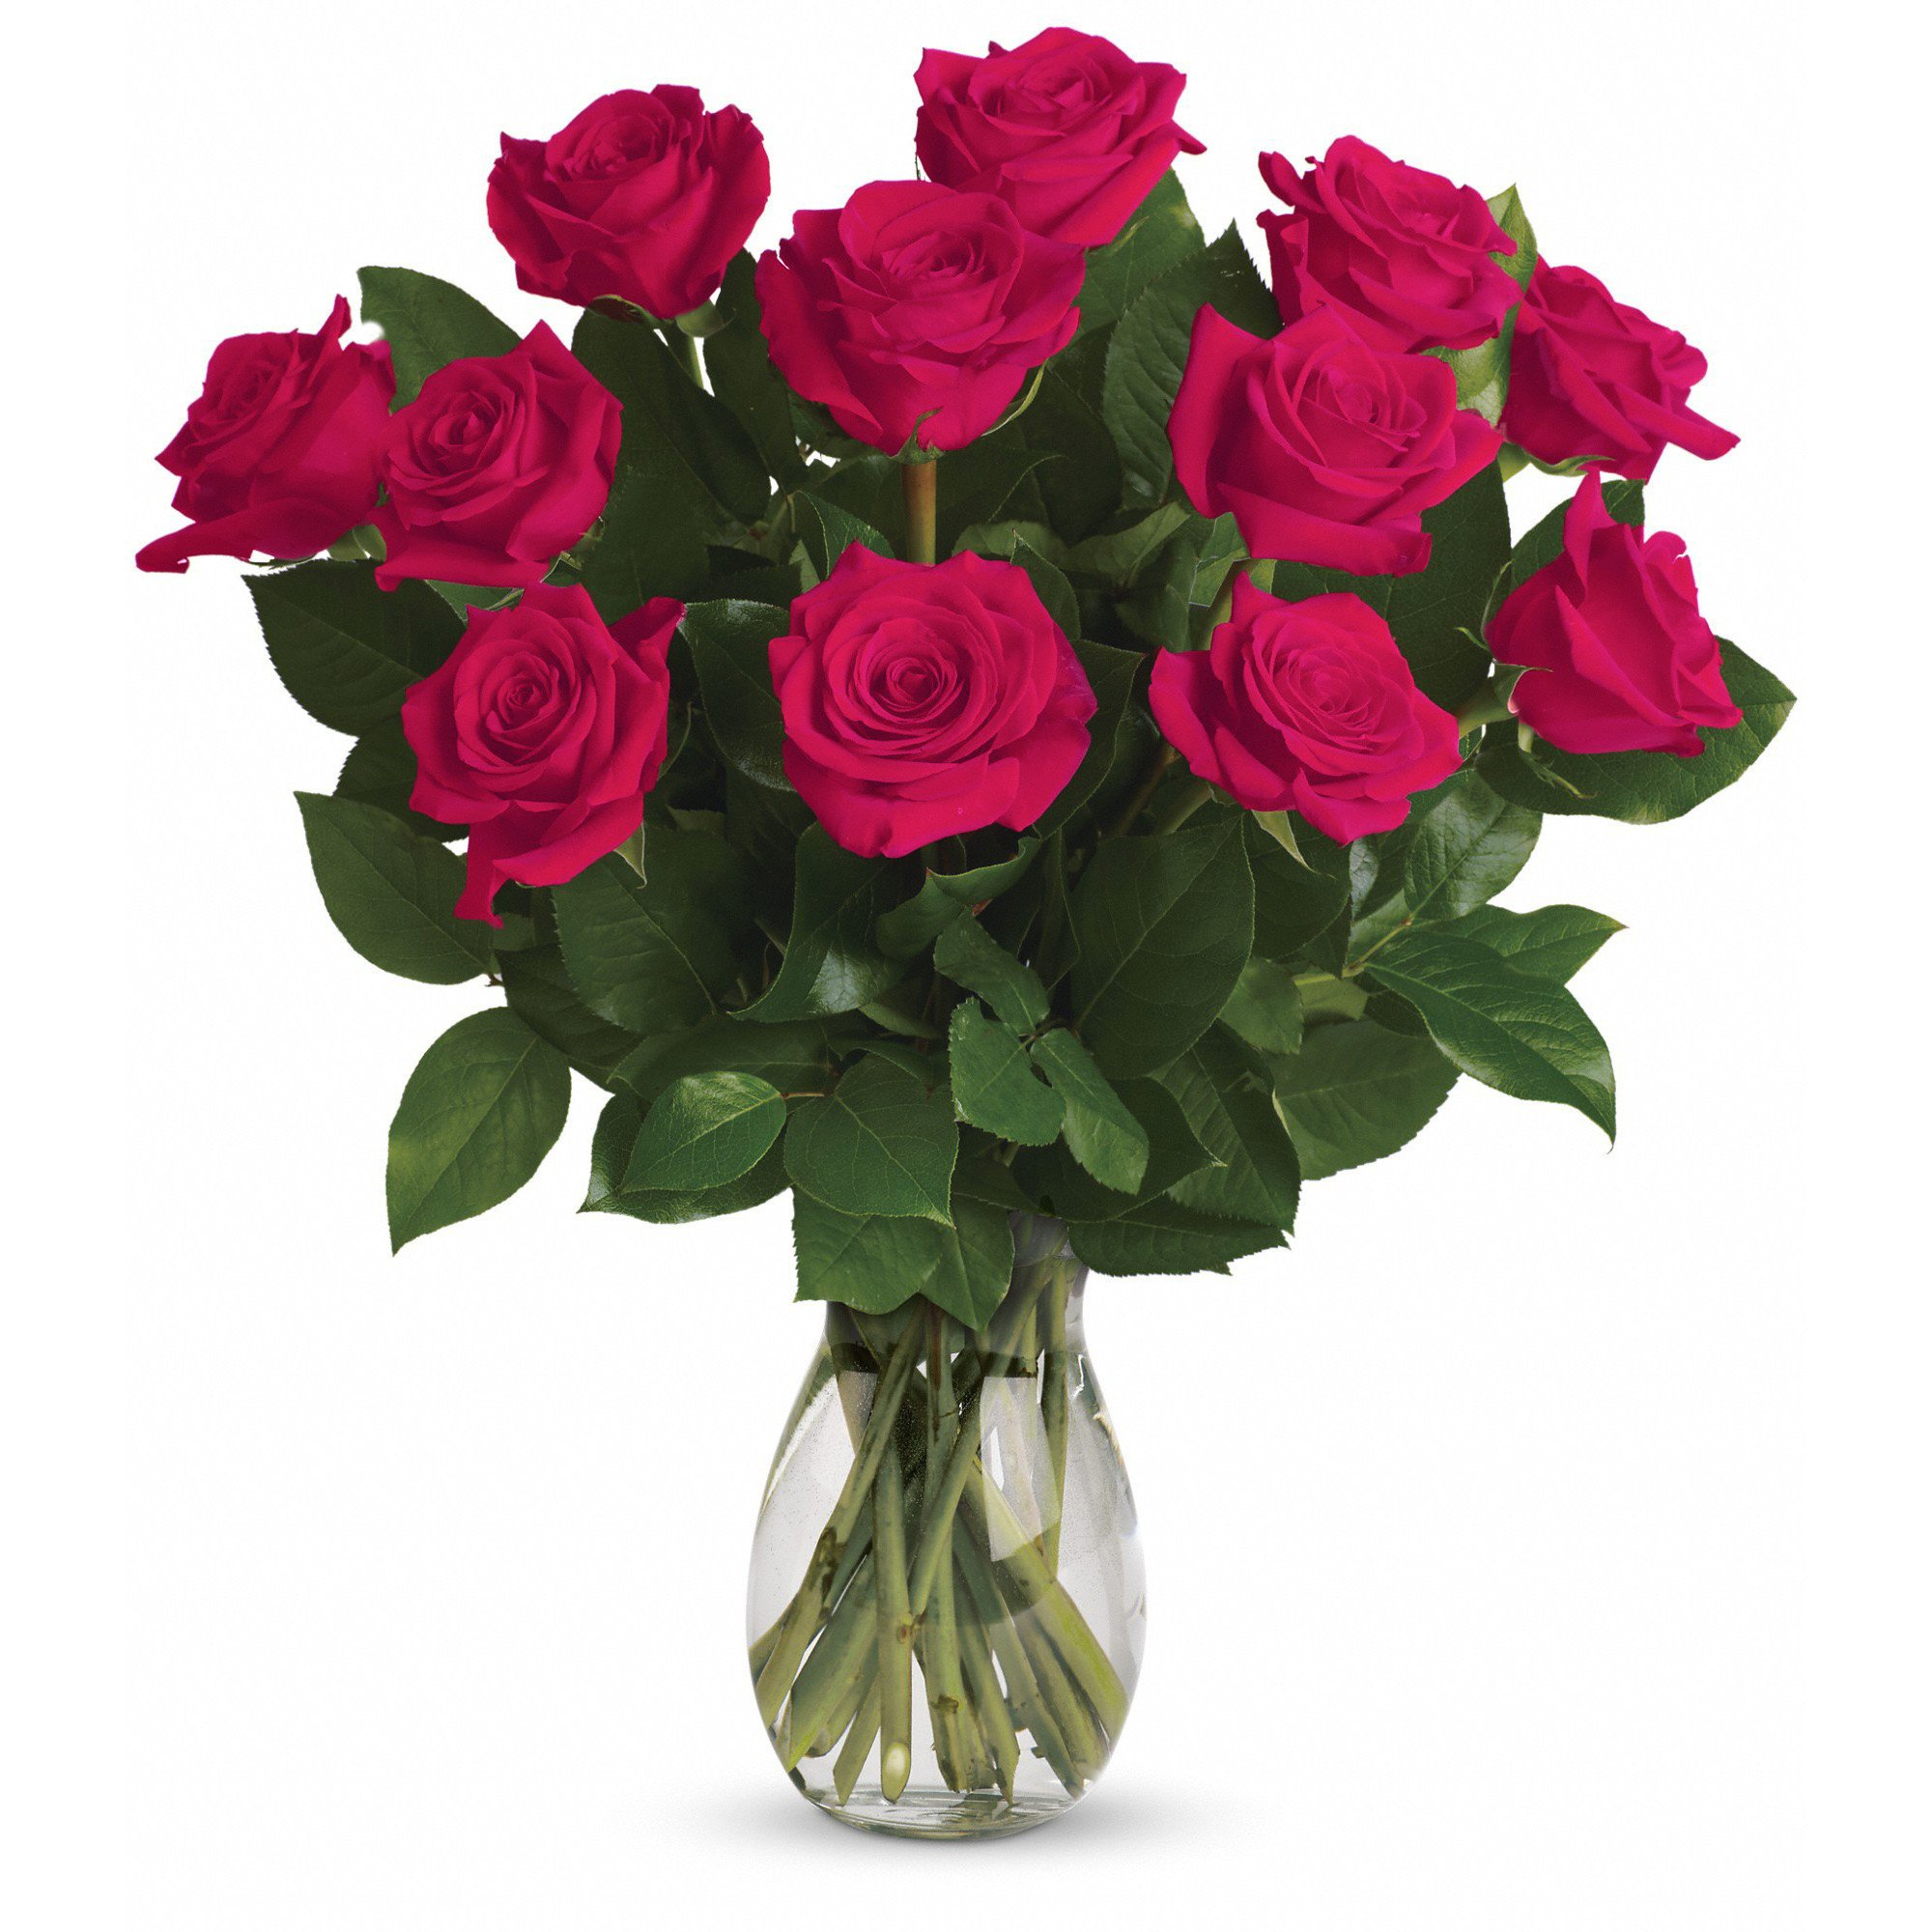 Farm Direct Rose Bouquet of 12 Fresh Cut Roses with Vase (Hot Pink)